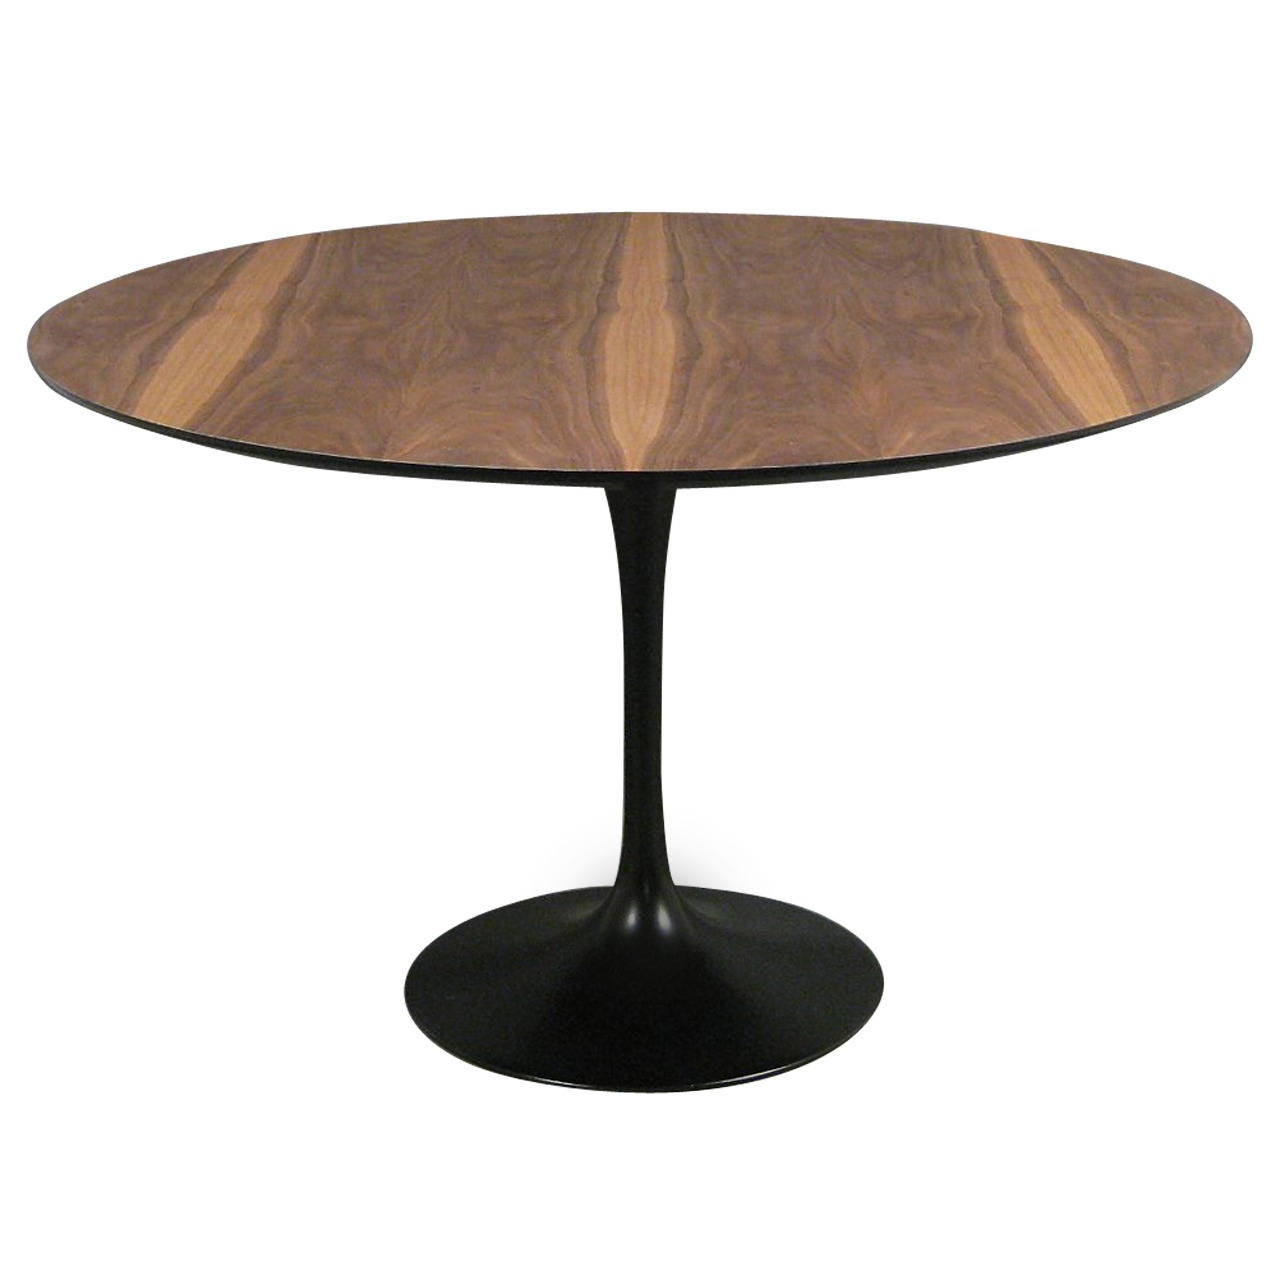 eero saarinen tulip dining table by knoll at 1stdibs. Black Bedroom Furniture Sets. Home Design Ideas